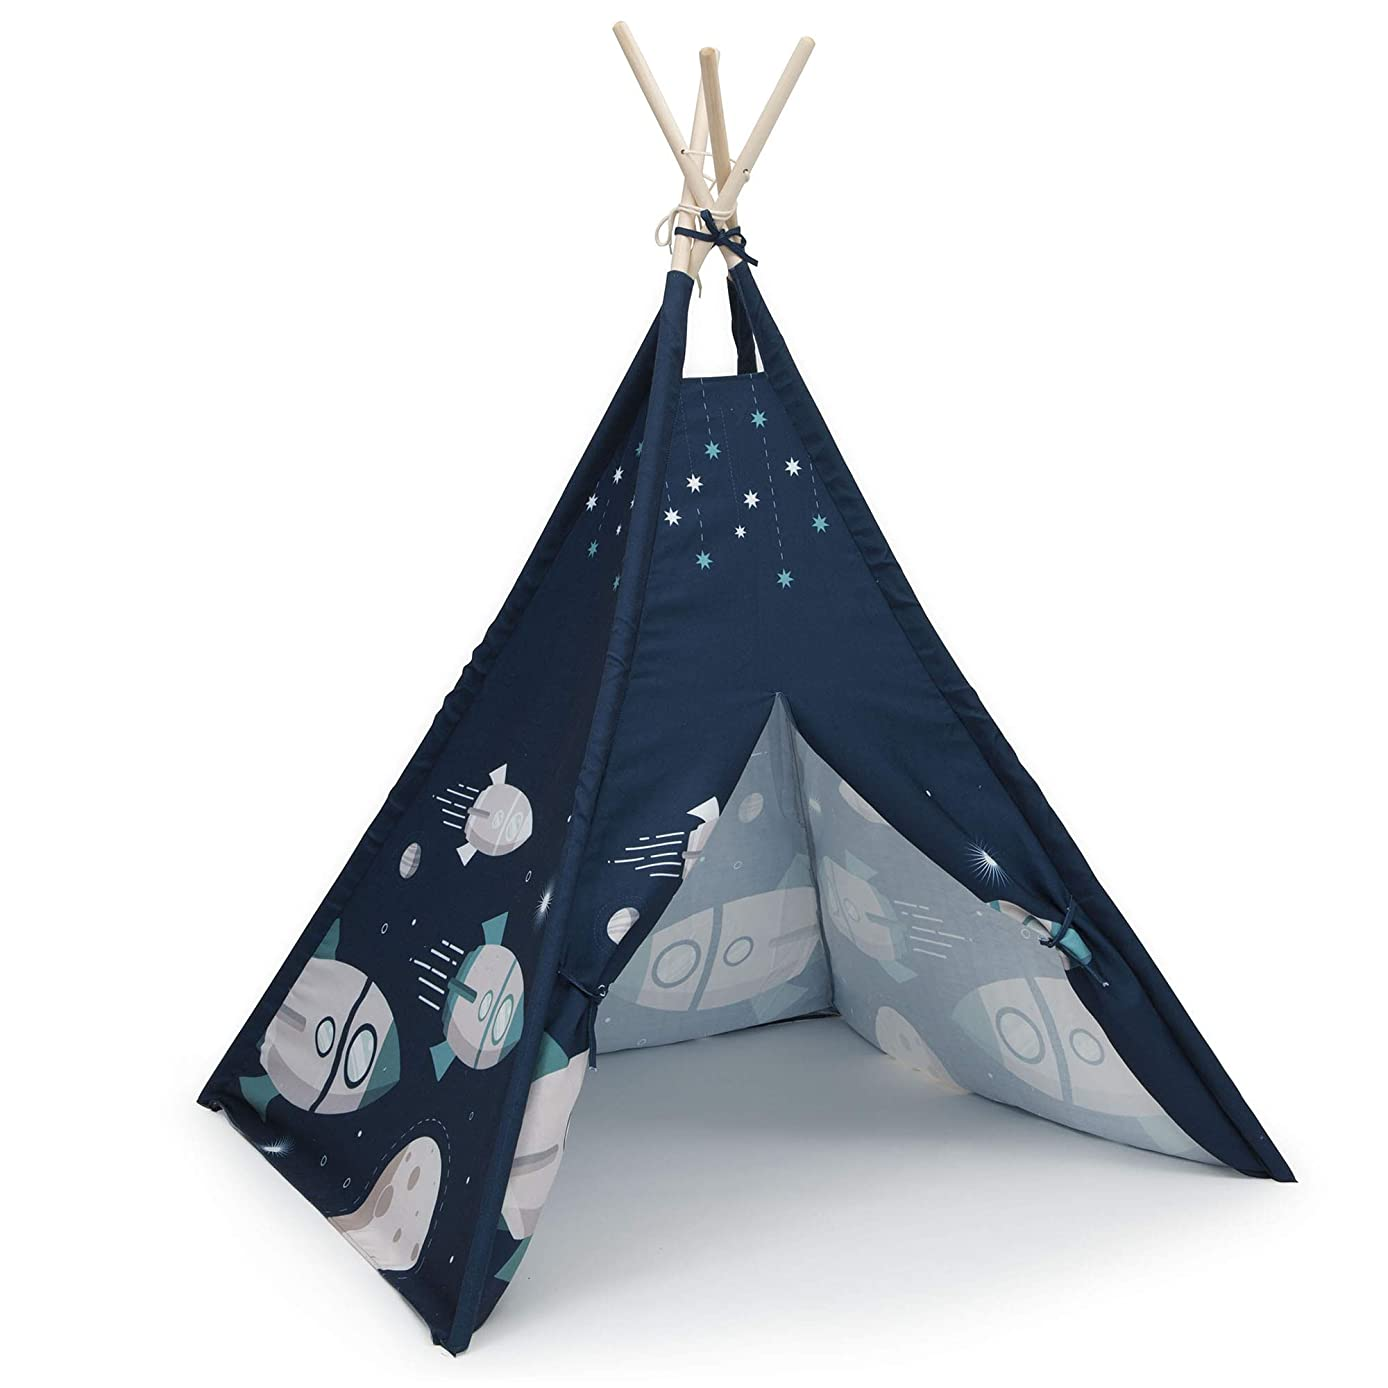 Delta Children Teepee Play Tent for Kids | Cotton Canvas with Wooden Poles, Outer Space Adventures